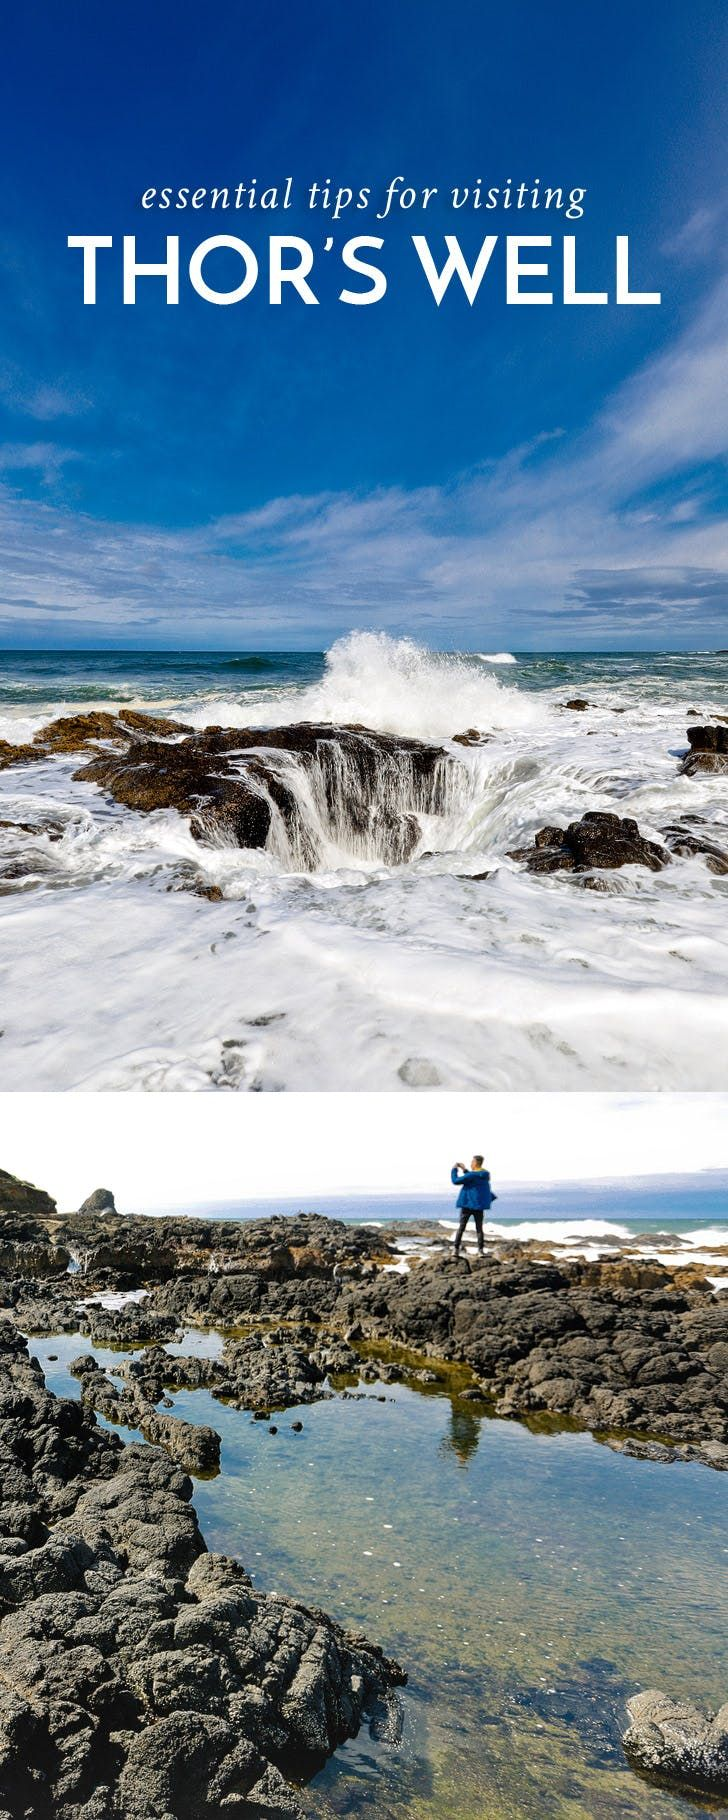 Guide to Thor's Well Cape Perpetua Scenic Area Oregon Coast